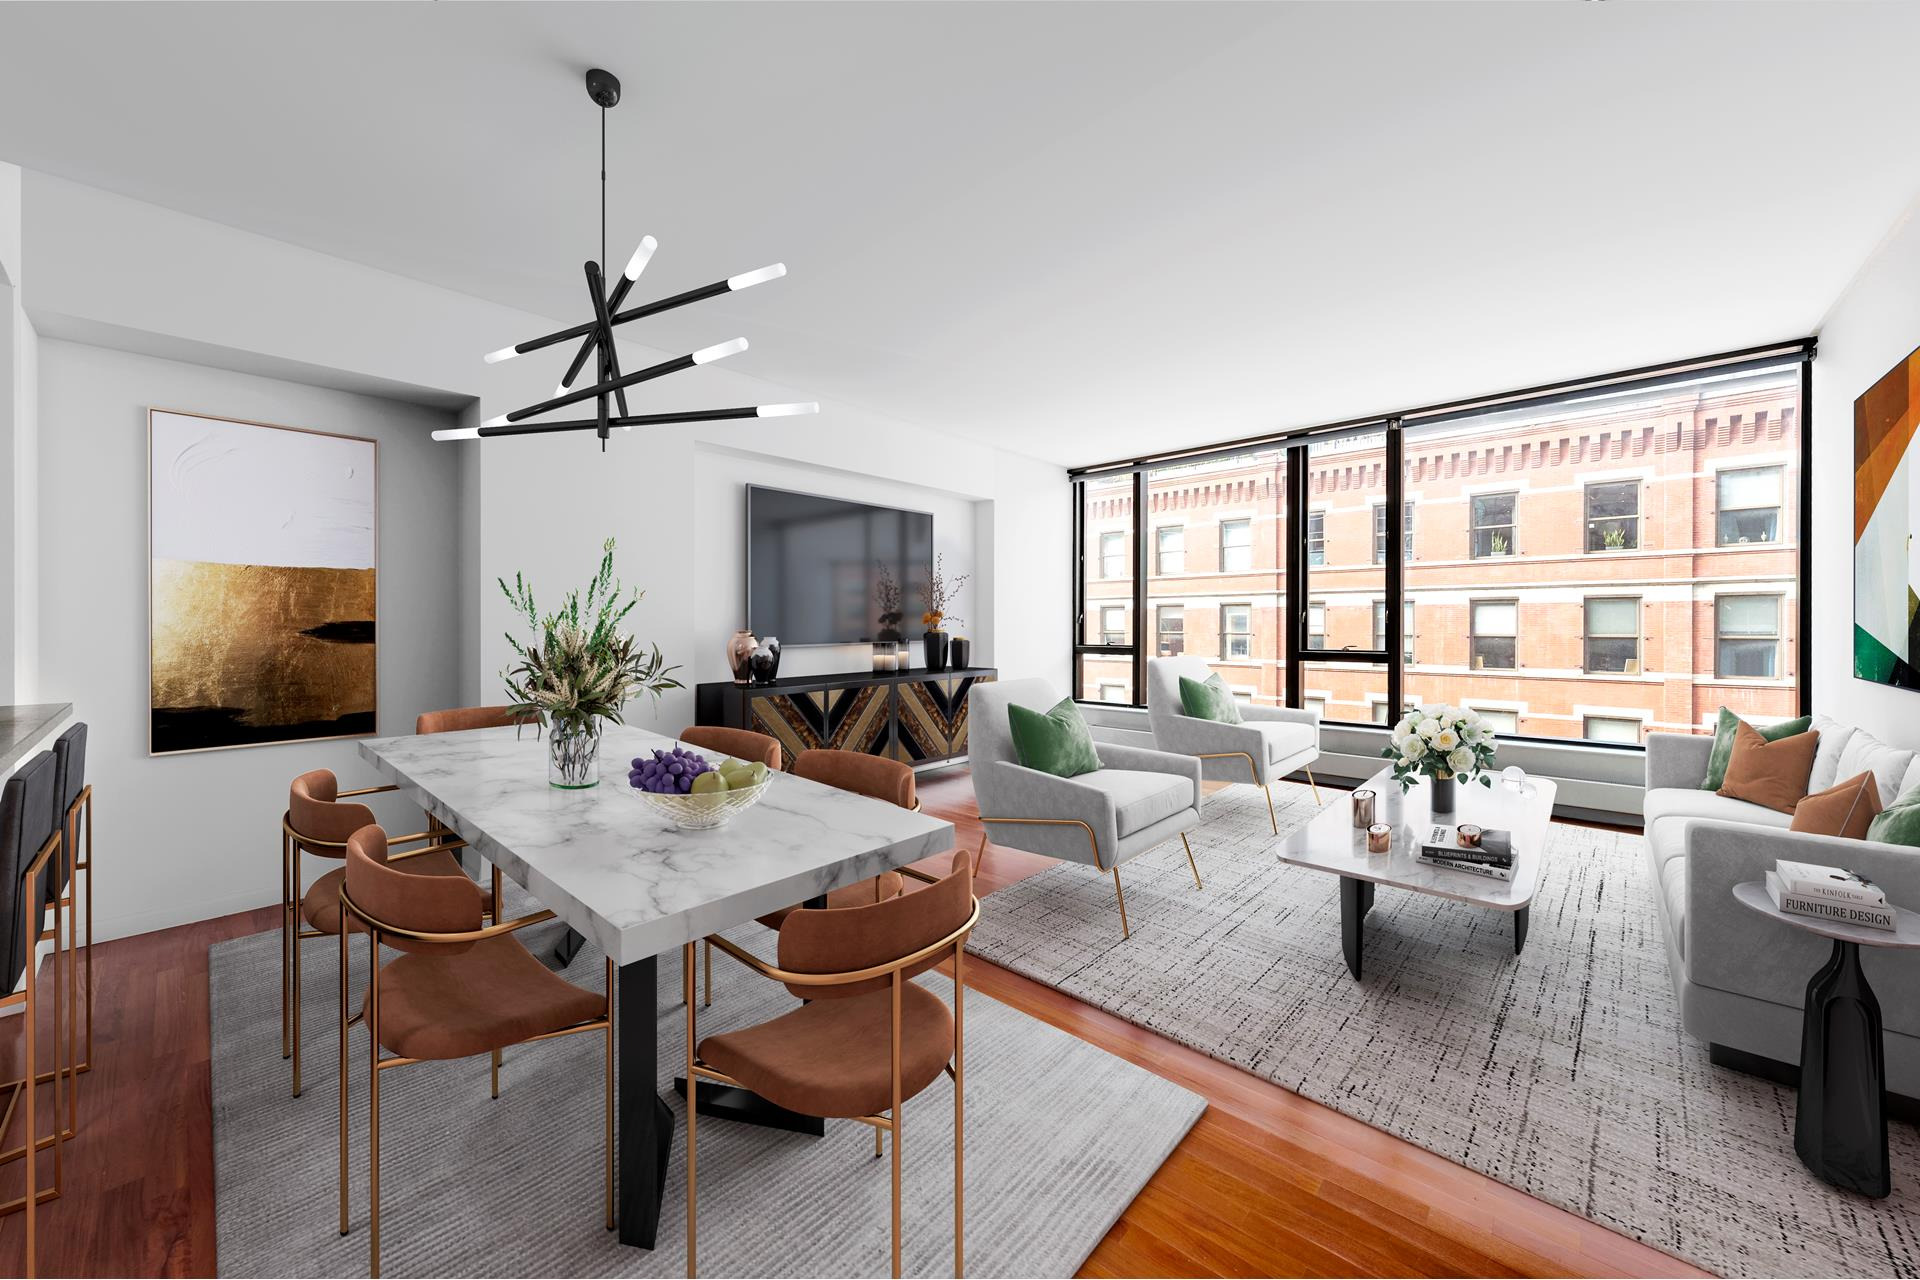 Downtown living in one of the most premiere neighborhoods NYC has to offer! Enjoy this oversized 2 bedroom, 2.5 bathroom Condo with 10' ceilings, hardwood floors, and exterior walls of glass. This spacious 1,819 square foot loft-like unit is bright, airy and has an great layout; fully equipped with every amenity one could desire, including Central A/C, Fisher Paykel range, Bosch dishwasher, Sub-Zero, separate built-in wine refrigerator, garbage disposal, Washer/ Dryer, and a Video/ Intercom messaging system. The large master bedroom suite includes a luxurious spa-like bath, shower, walk-in California closet, and serene views of the Zen Garden and City.A full size walk-in Laundry room and abundant closets add to the already 'smart' design. The building features a 24-hour doorman/ concierge, fitness center, pet spa, zen-meditation garden, children's playroom, bike storage and private resident storage. Situated between the Hudson River, Tribeca, the West Village and prime SoHo, 505 Greenwich is accessible to the best of Lower Manhattan.6A at 505 Greenwich Street is the definition of West SoHo Luxury.